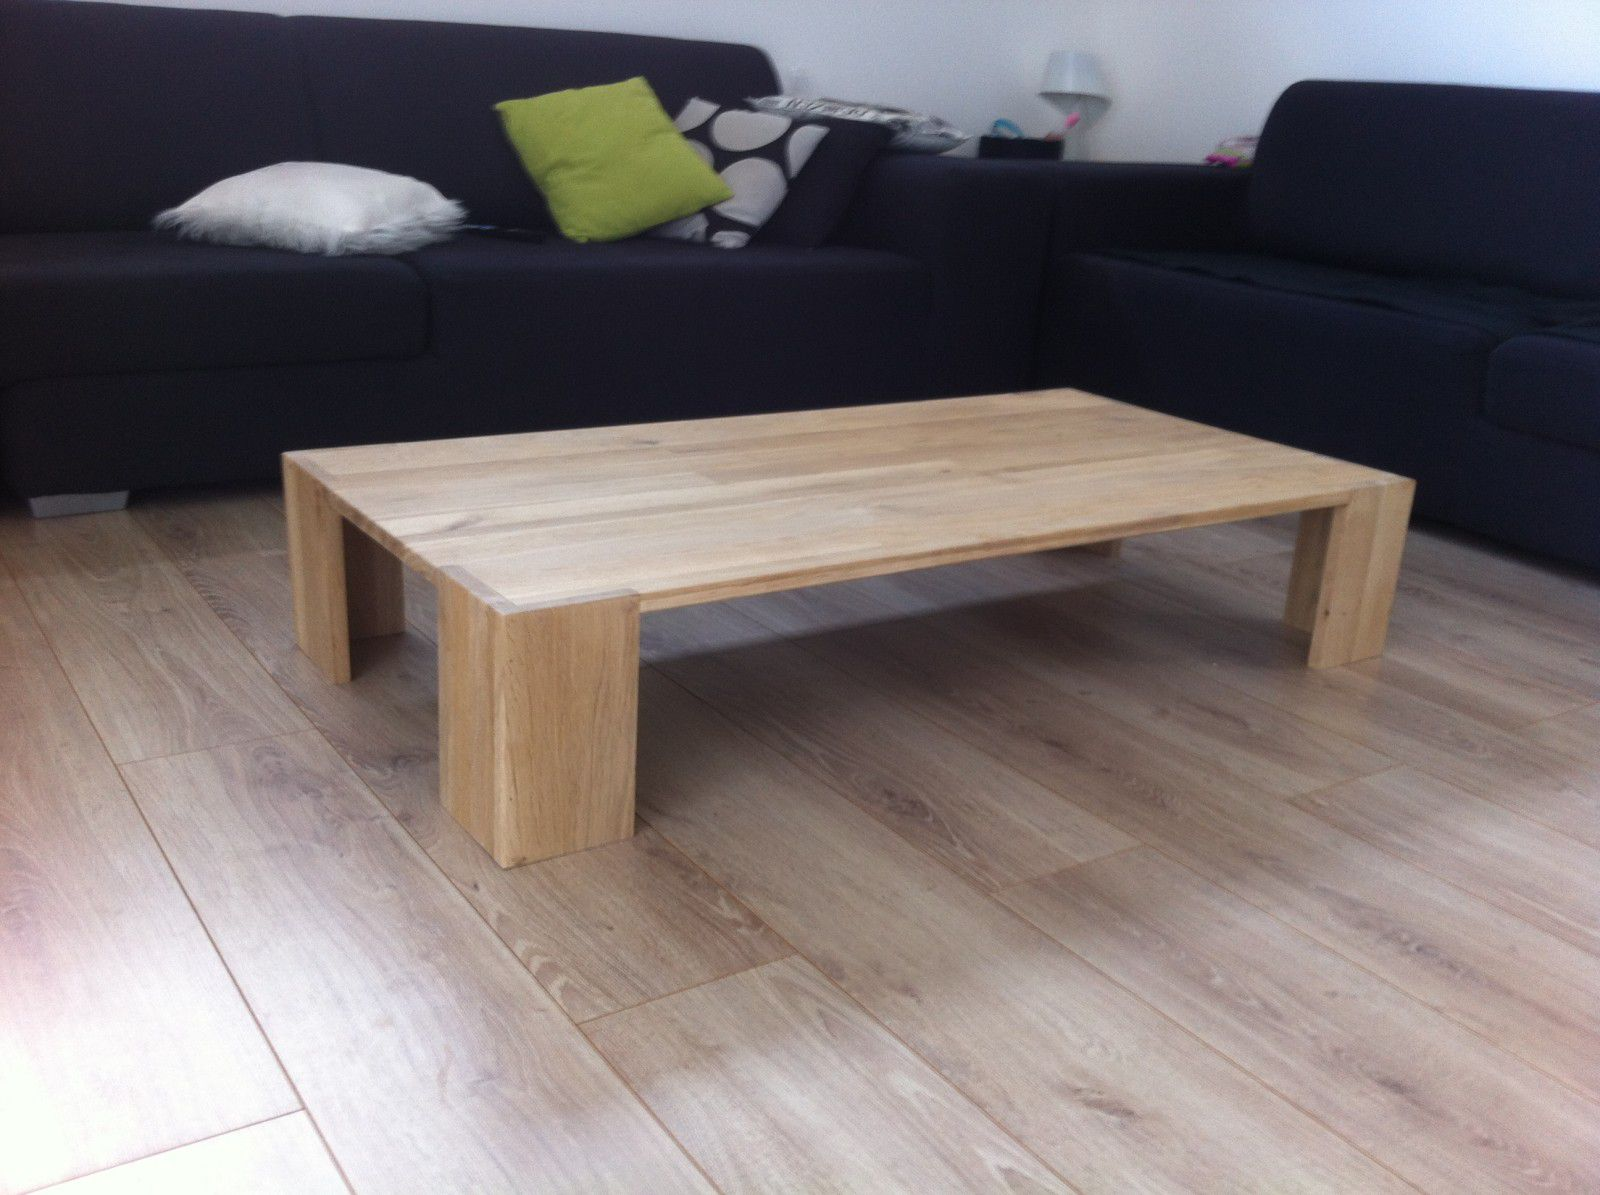 Table Salon Chene Massif Table Basse En Chene Massif Trendy Acheter Votre Table